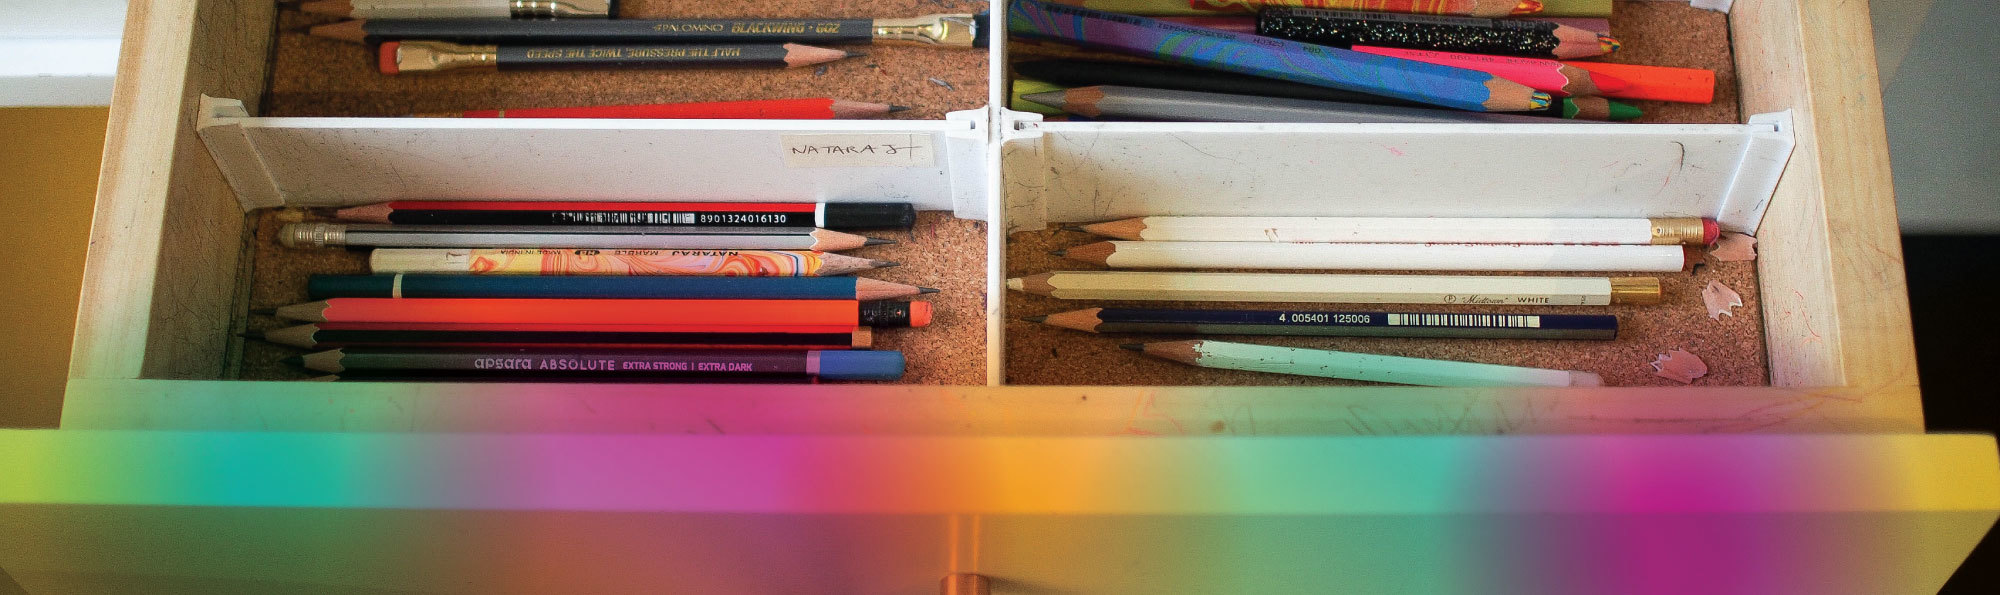 Drawer of pencils